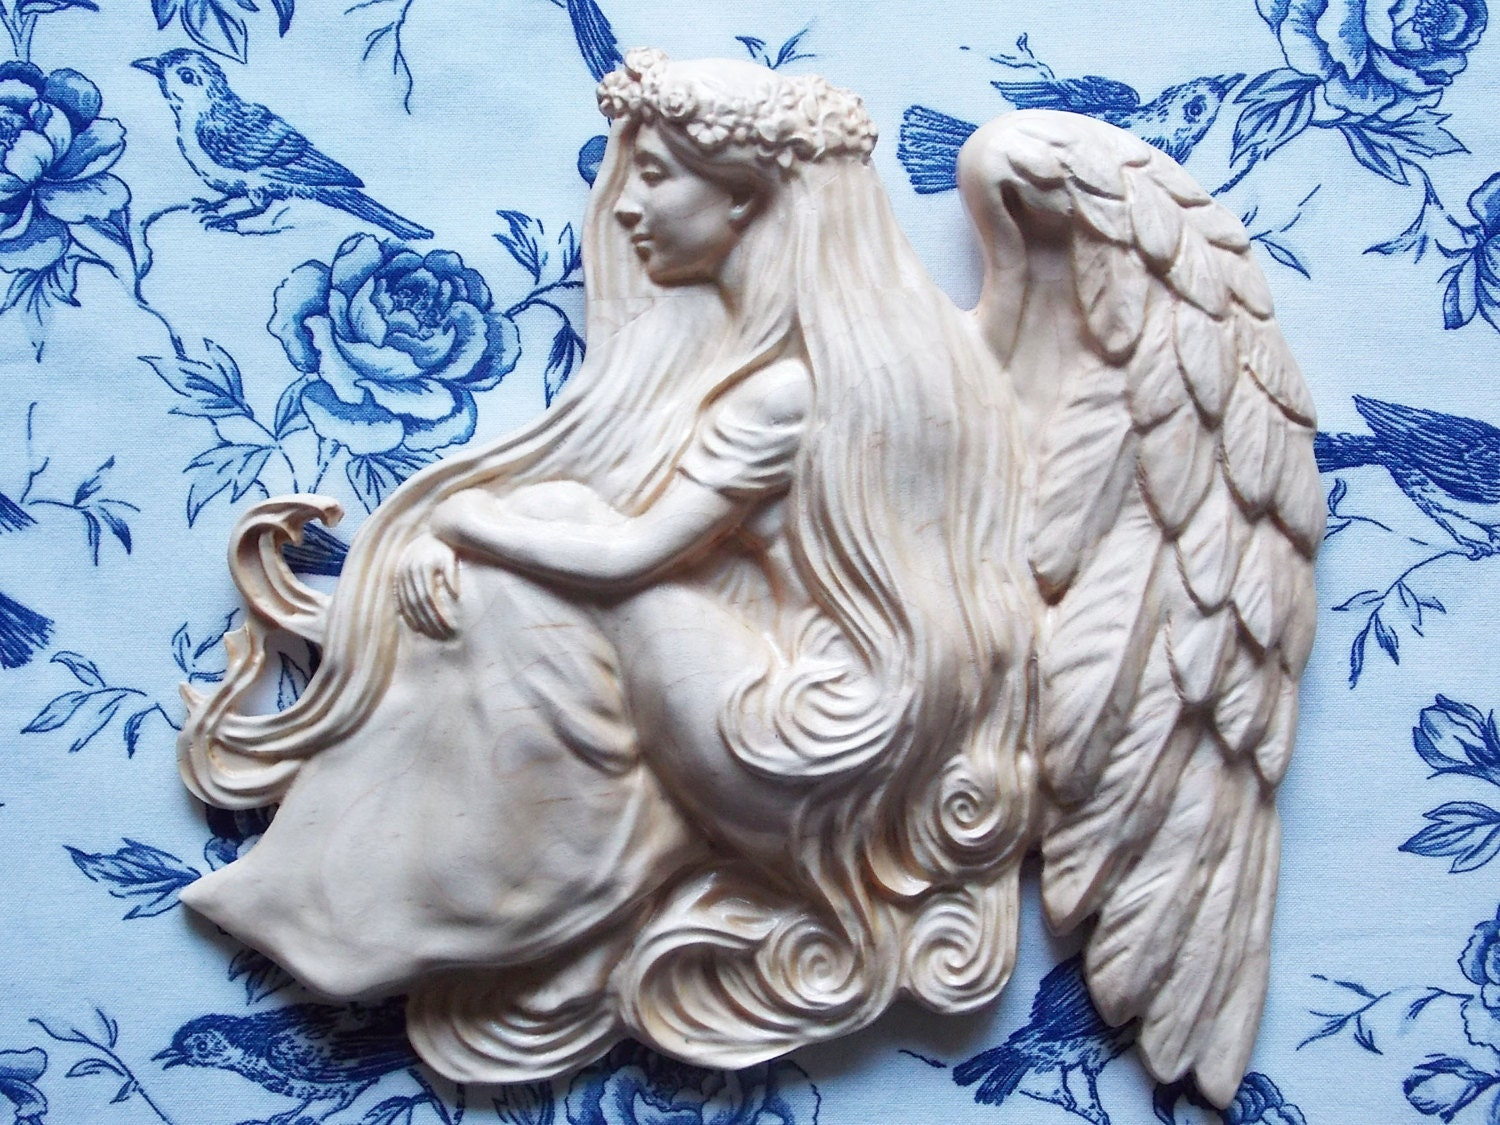 Carved angel wings wall decor : Wood carved angel wings wall decor carving